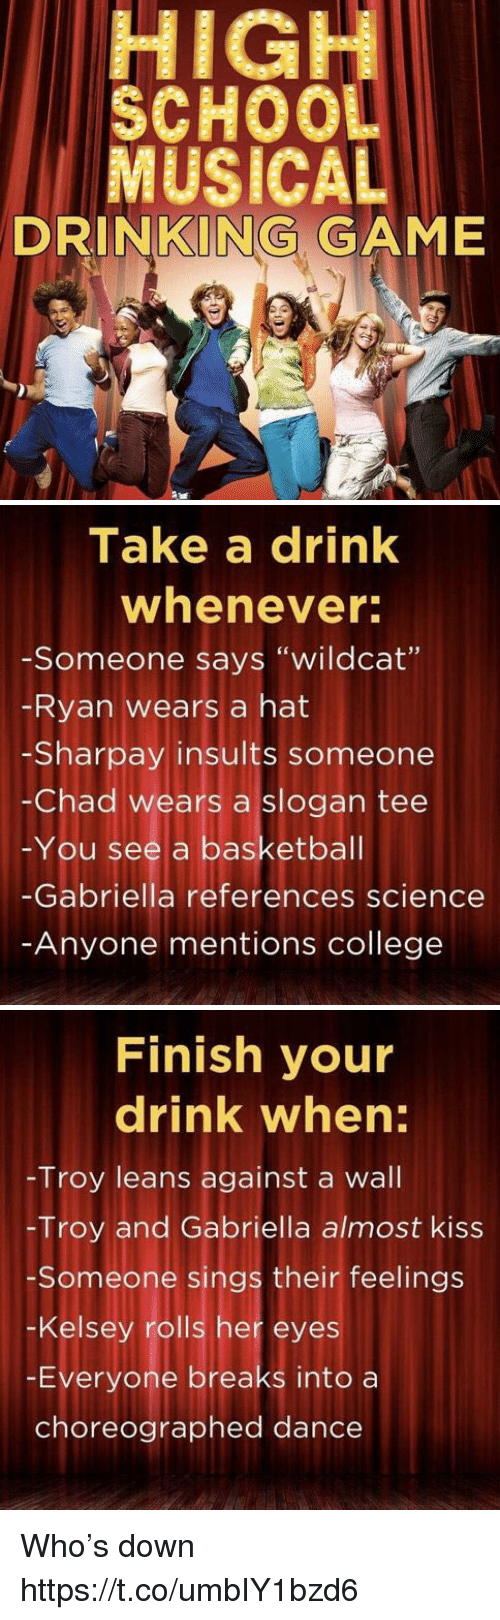 "Dancee: HIGH  SCHOO  MUSICAL  DRINKING GAME   Take a drink  whenever  -Someone says ""wildcat""  Ryan wears a hat  -Sharpay insults someone  -Chad wears a slogan tee  -You see a basketbal  -Gabriella references science  Anyone mentions college   Finish your  drink when:  Troy leans against a wall  -Troy and Gabriella almost kiss  Someone sings their feelings  -Kelsey rolls her eyes  -Everyone breaks into a  choreographed dance Who's down https://t.co/umbIY1bzd6"